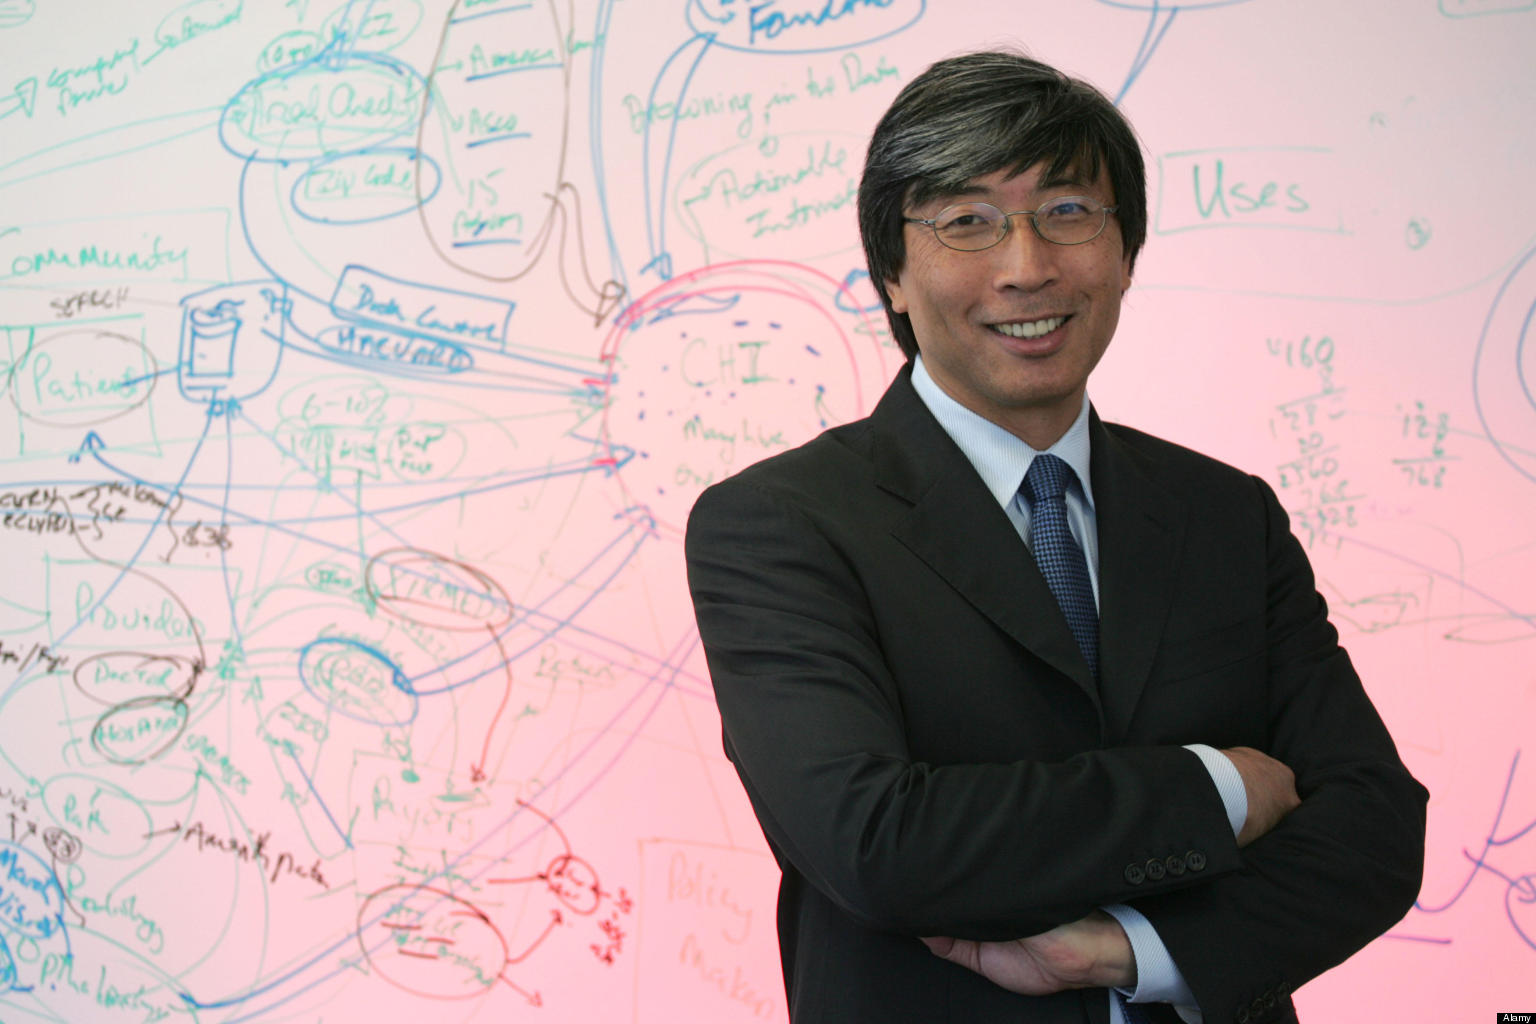 Billionaire Developing Smart Grid For Medical Information